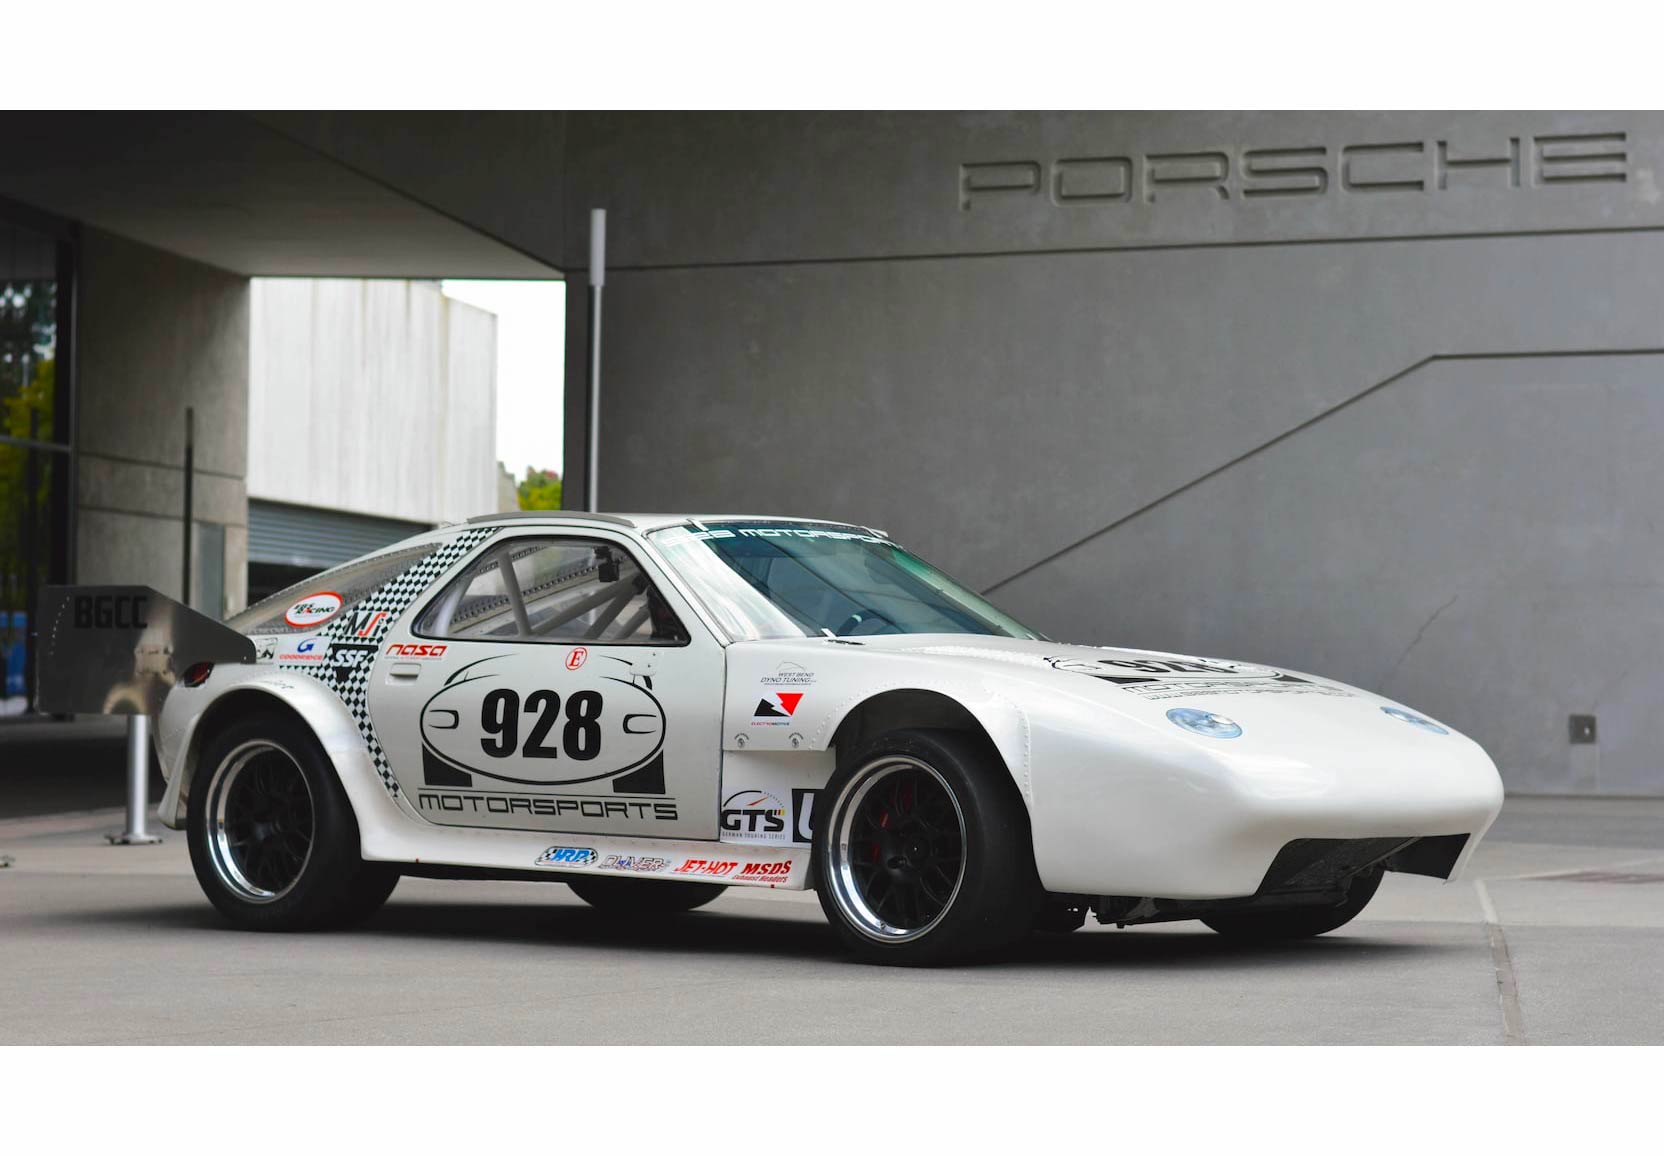 For Sale: A 1,114 hp Porsche 928 Land Speed Record Holder + Pikes Peak Racer